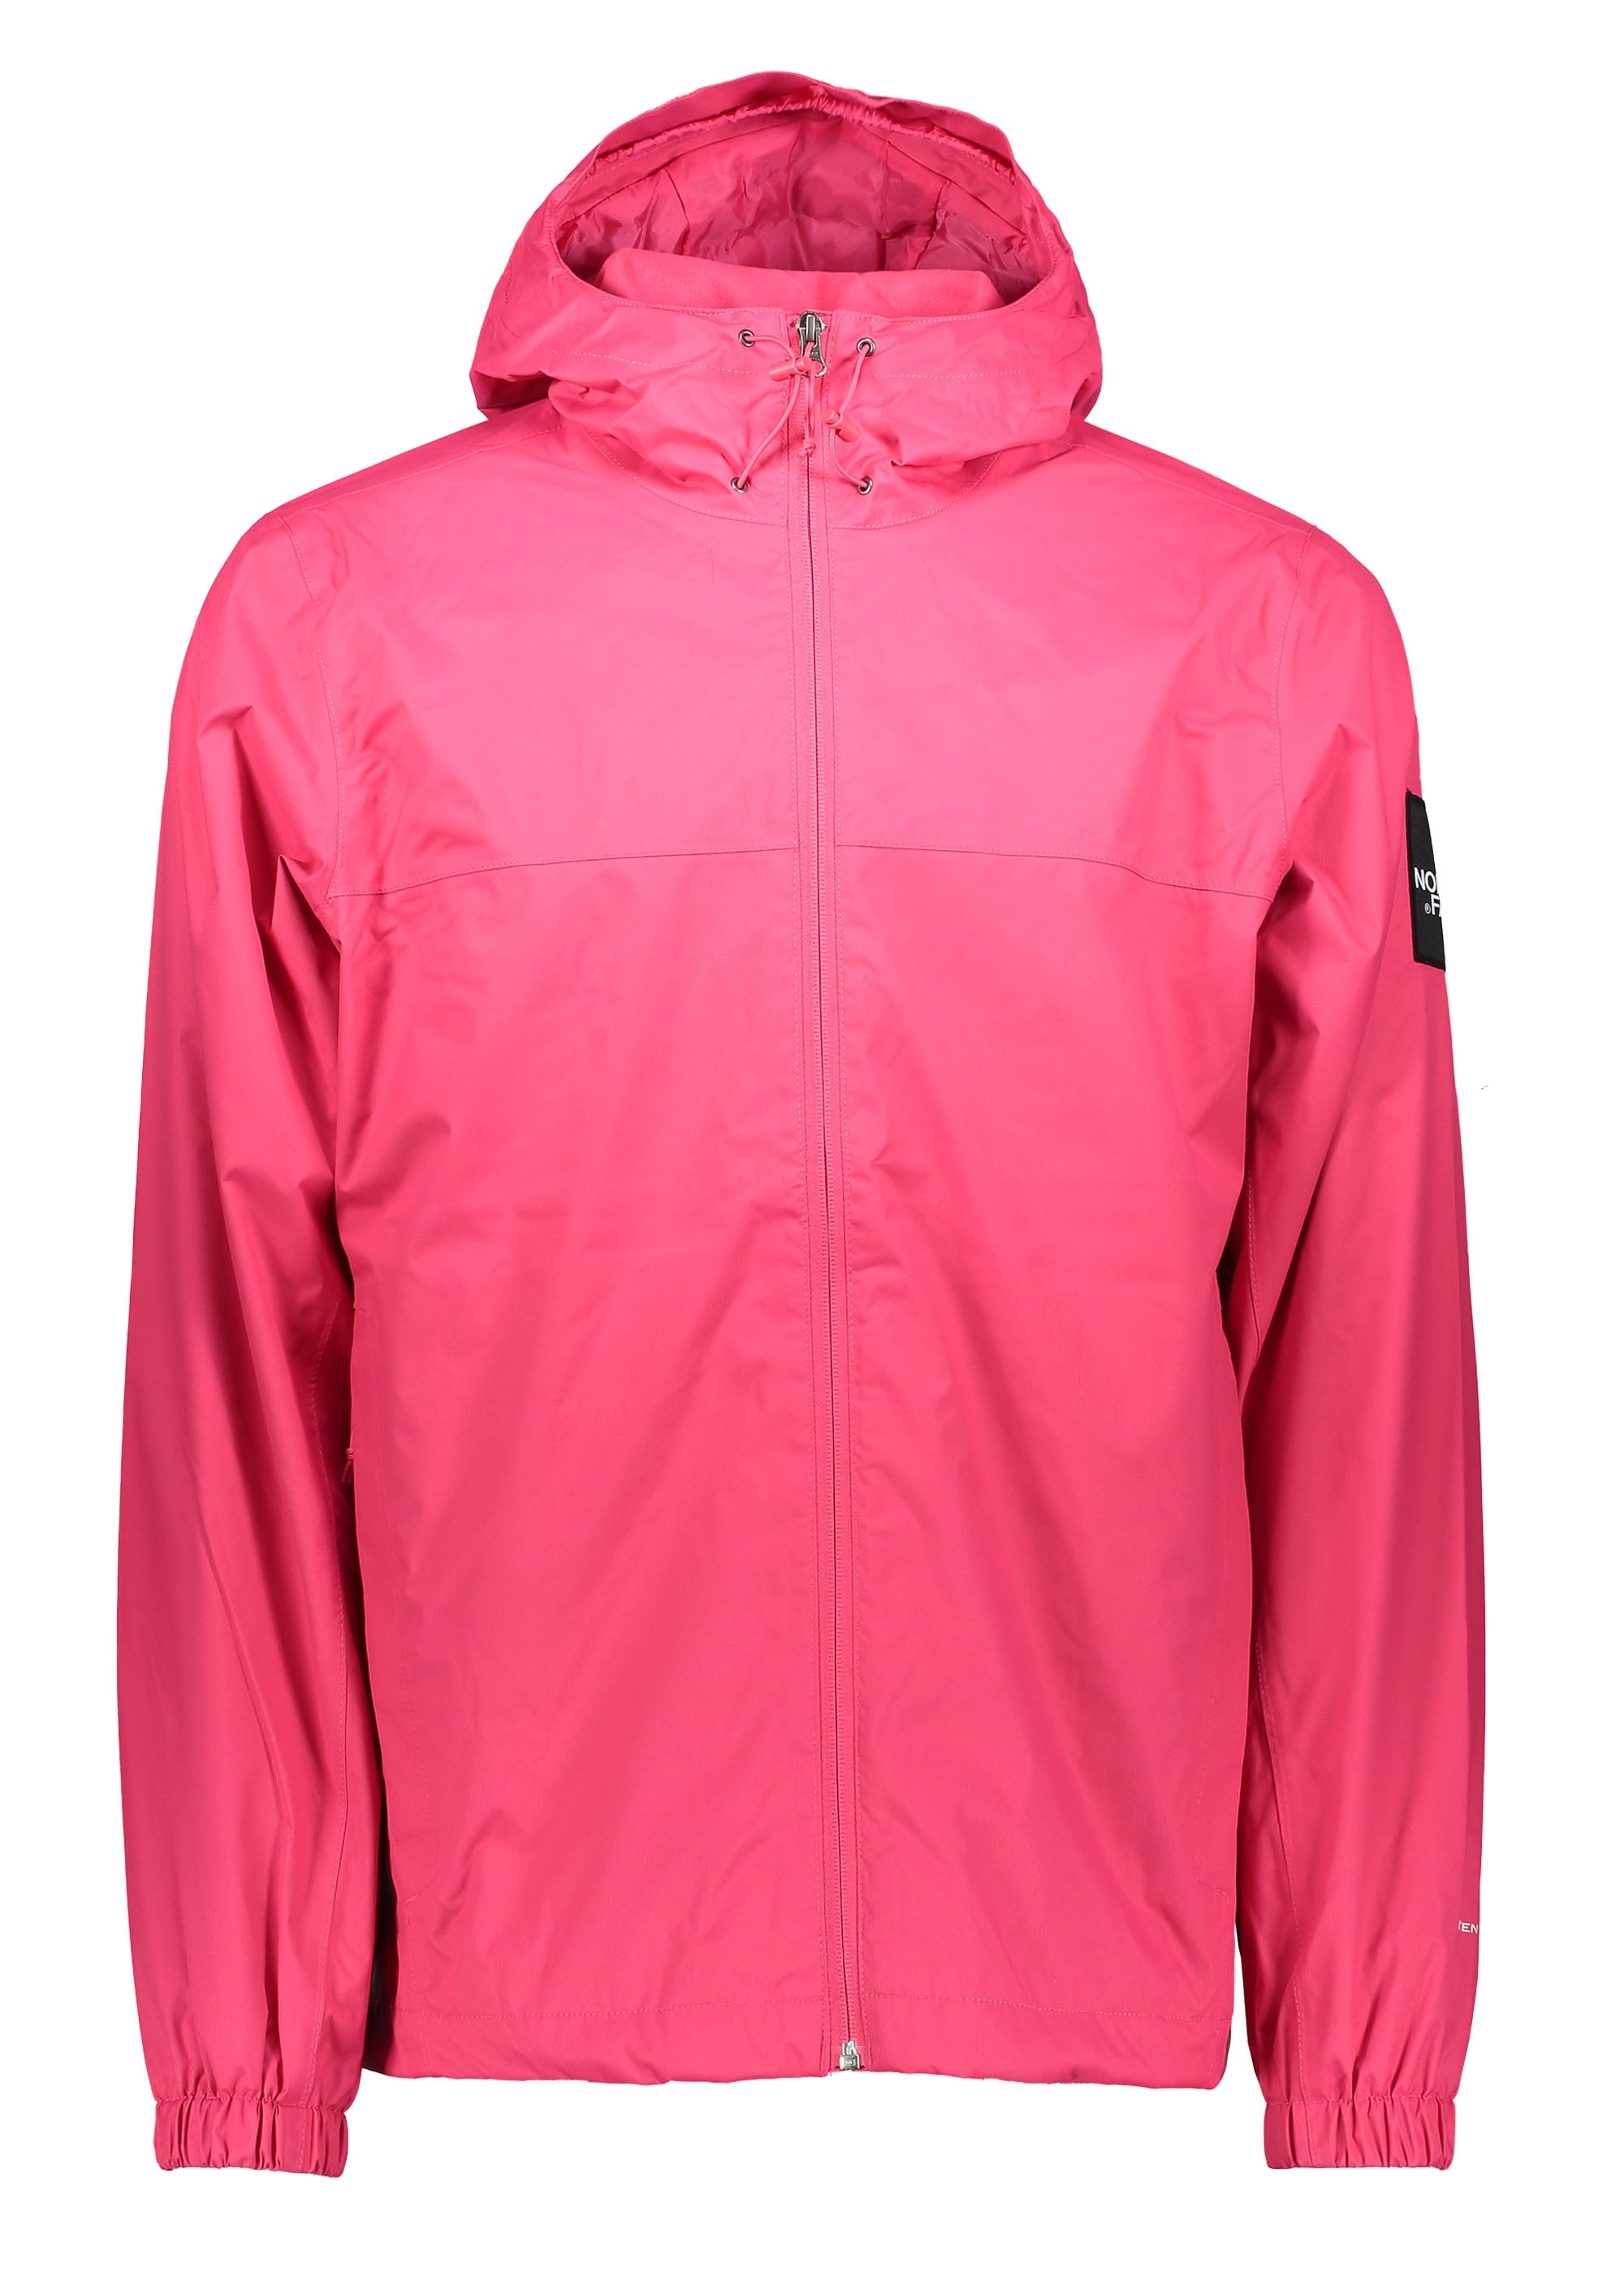 b9f27af8ea22 The North Face Mountain Q Jacket - Raspberry Red - Jackets from Triads UK